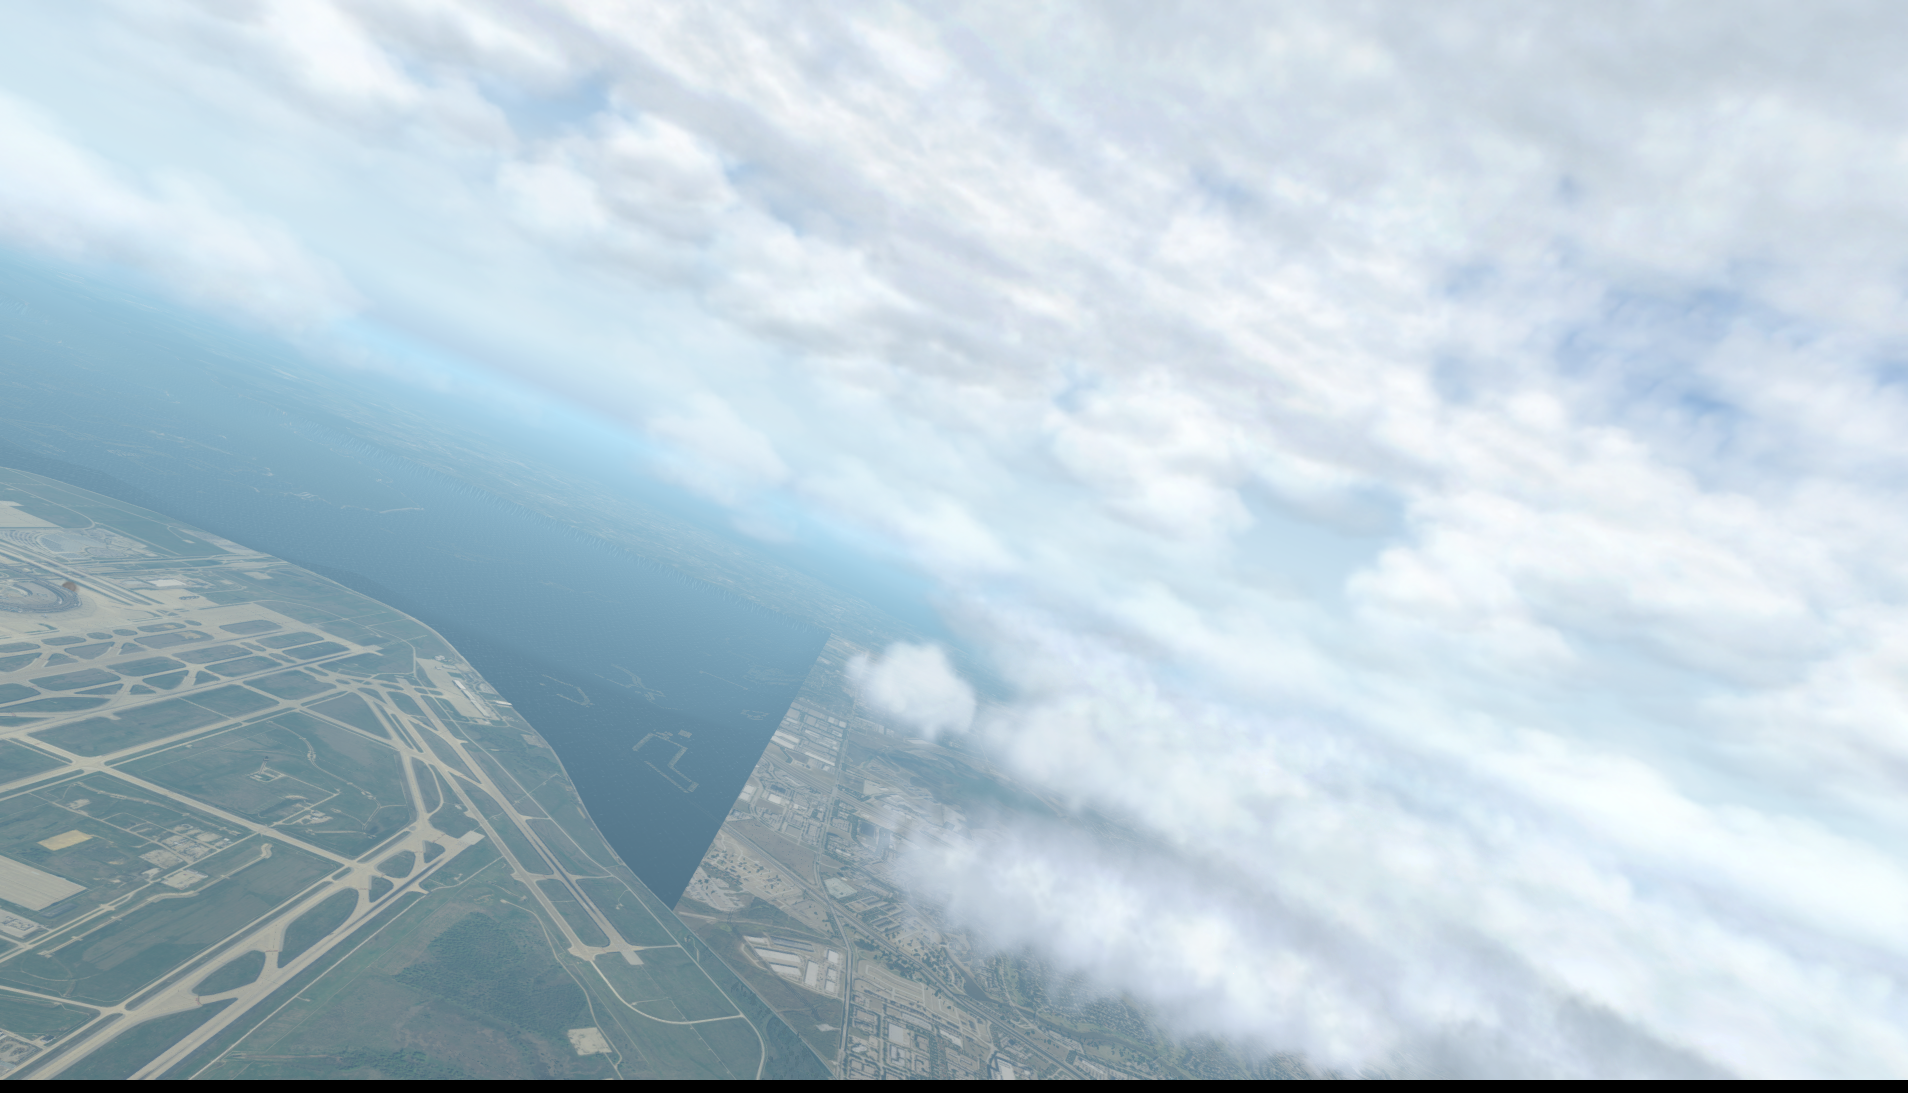 Water surrounding DFW when using Orthos - Scenery General